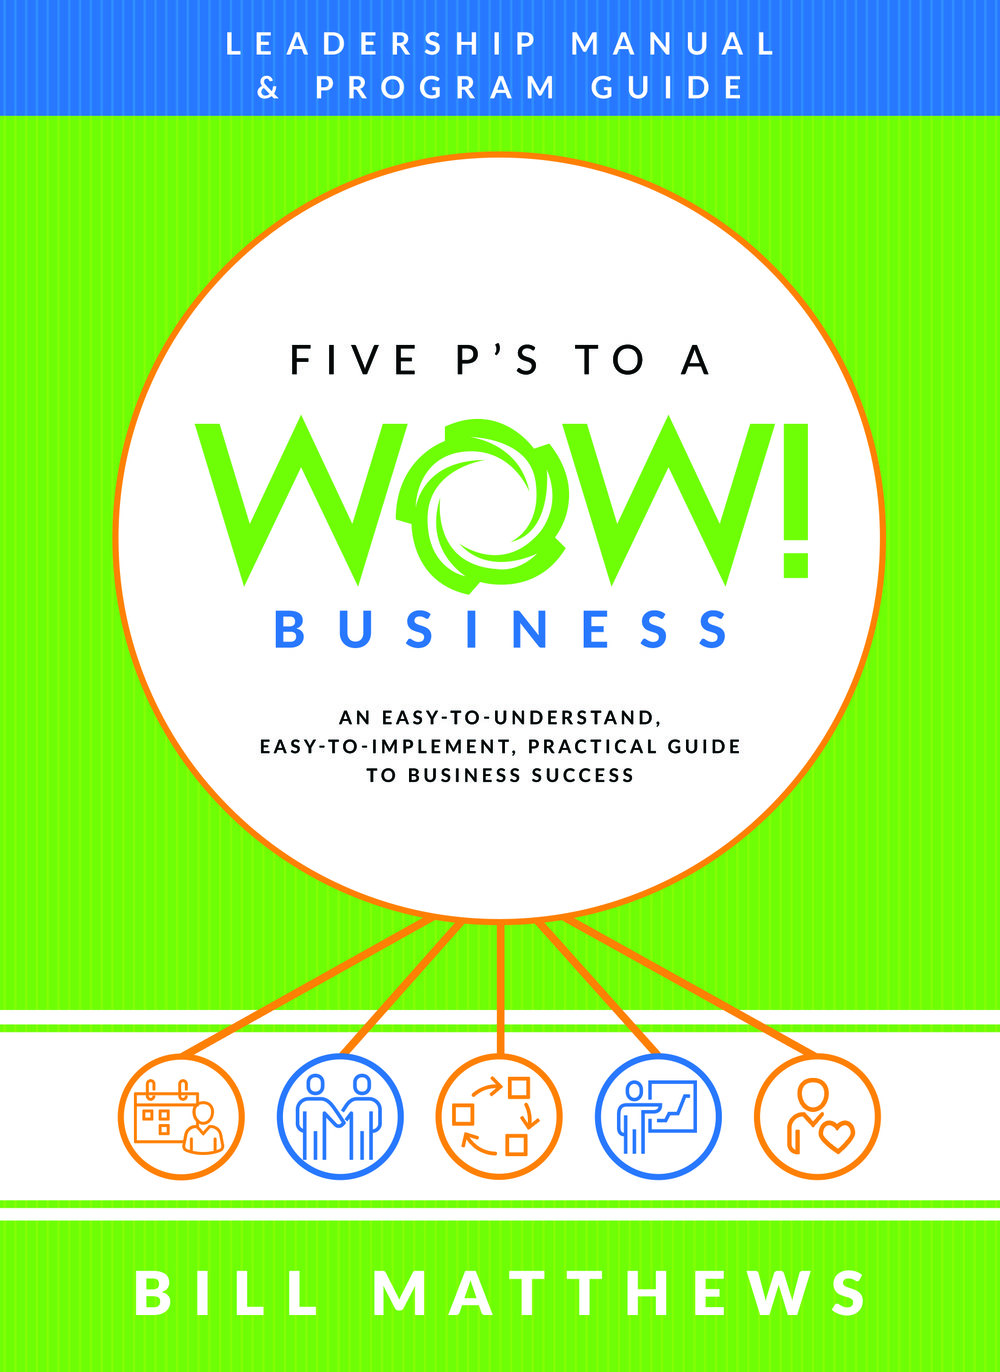 Five P's to a Wow Business Leadership Manual and Program Guide - Bill Matthews